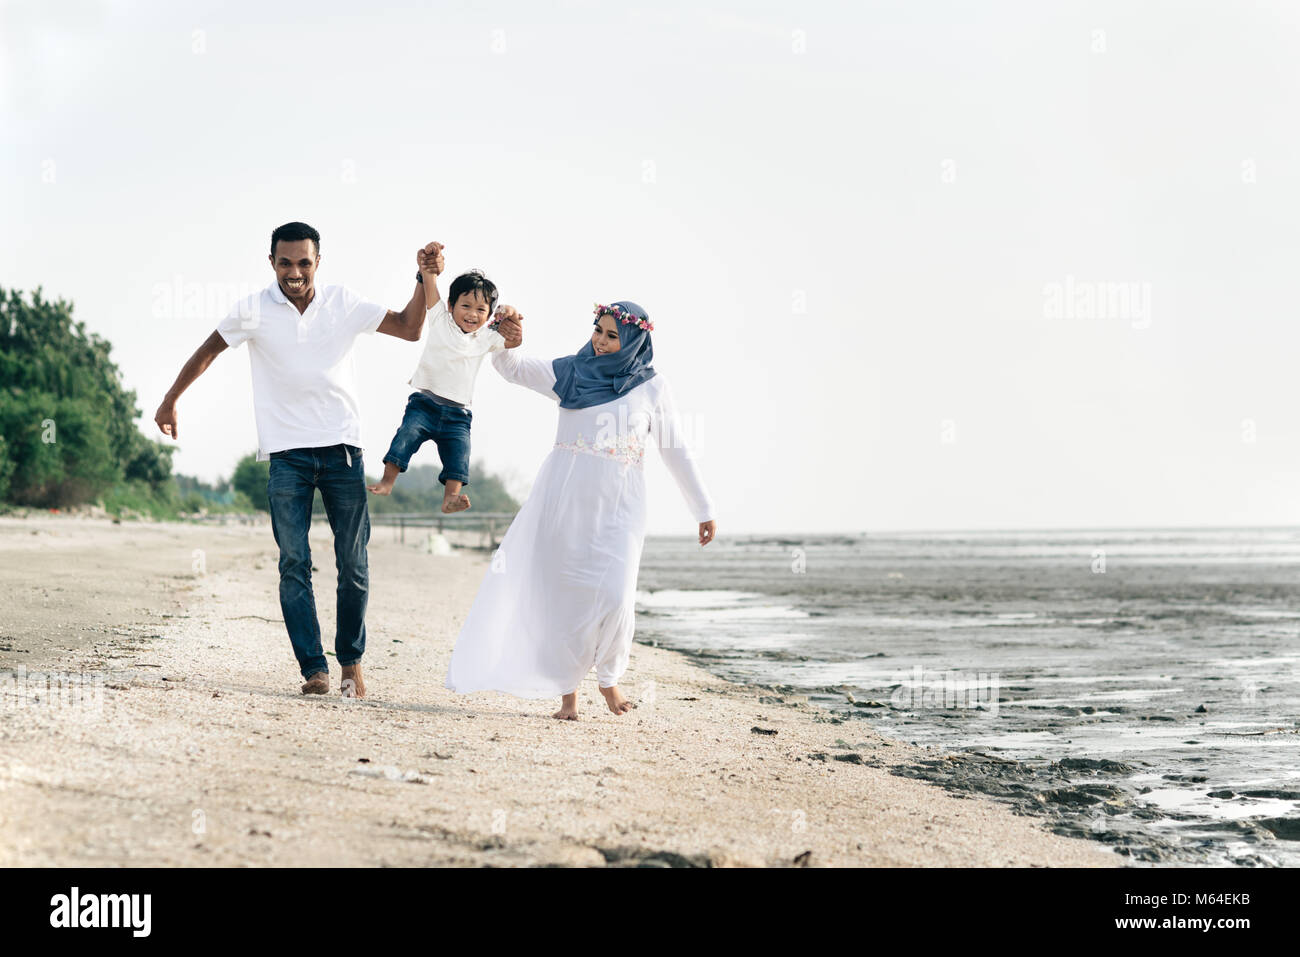 Happy Family having fun at plage boueux Situé à Pantai remis,Selangor,Malaisie. Concept de la famille Photo Stock